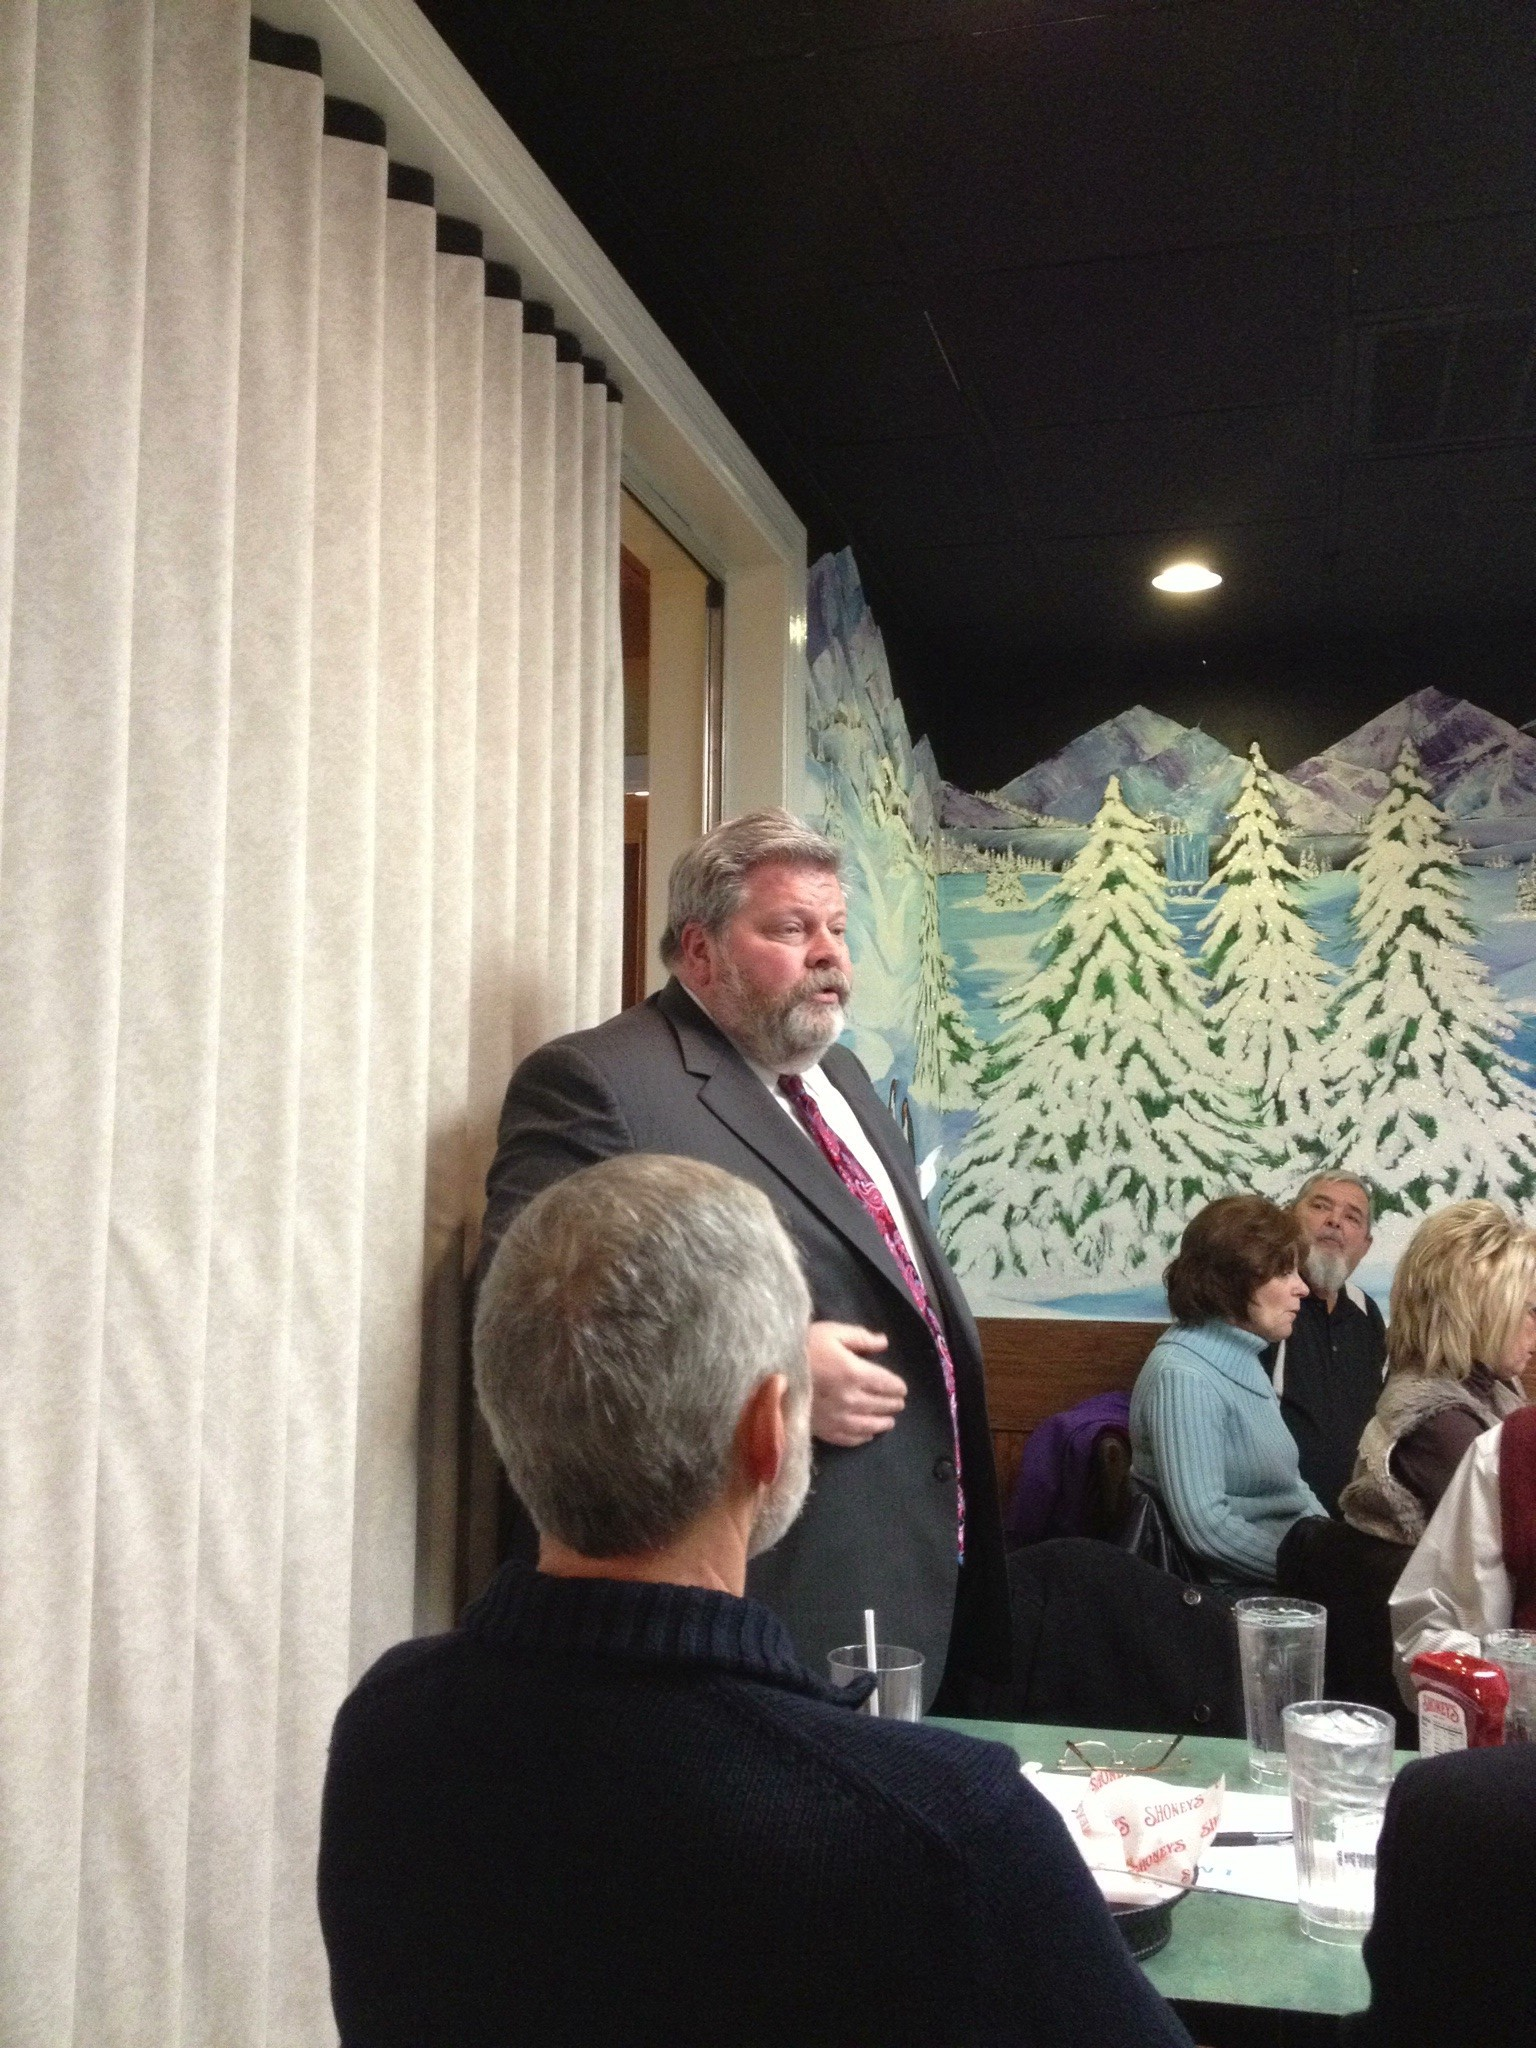 Ray Jenkins introducing himself  at the 1/23/2014 Center City Republican Club